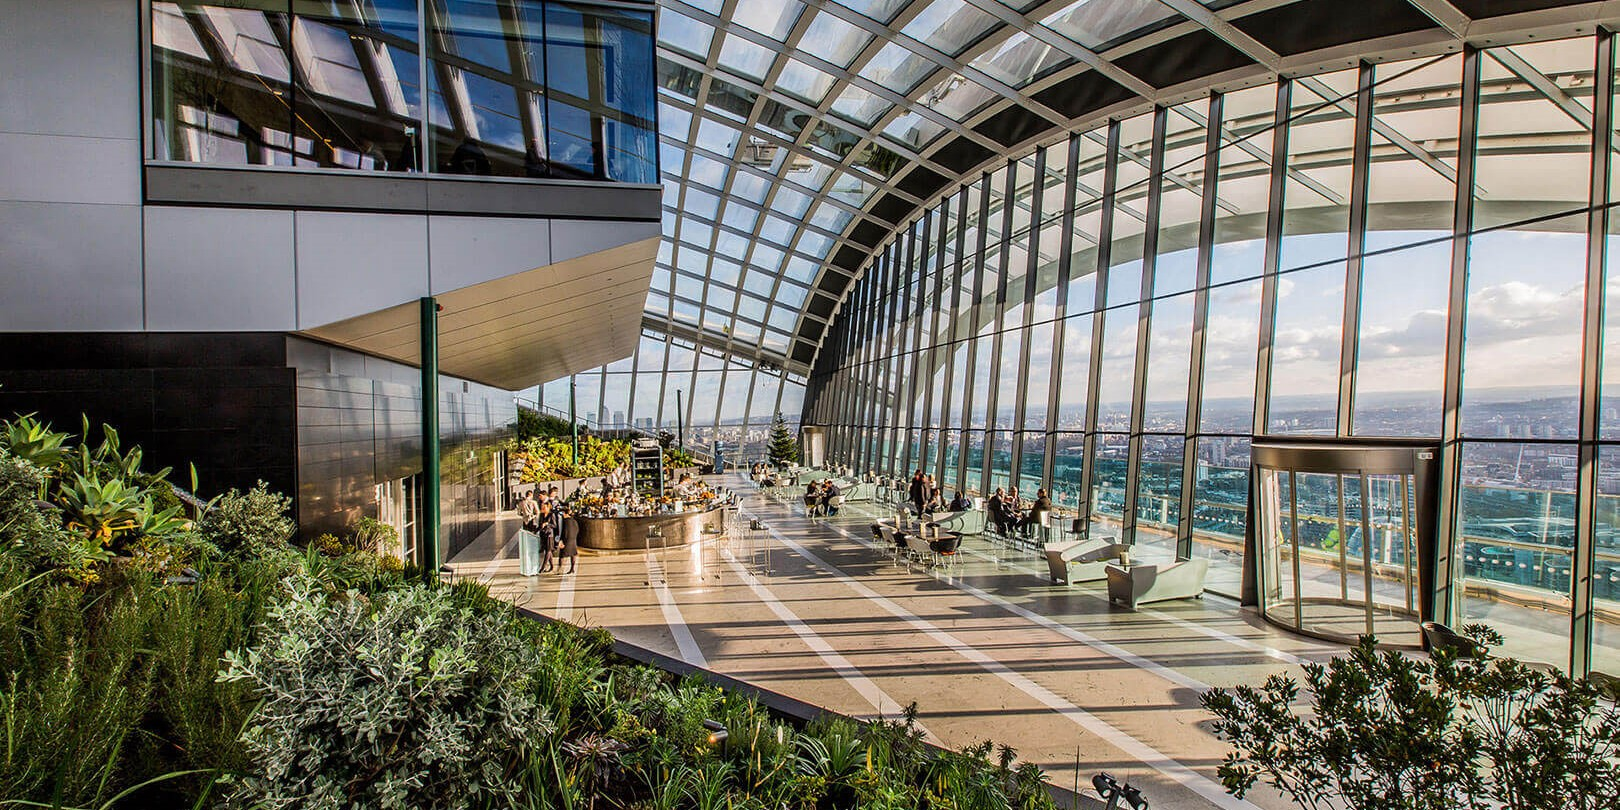 Prepossessing Sky Garden  Event Concept With Foxy Sky Garden With Divine Blagdon Water Gardens Also Best Petrol Mower For Small Gardens In Addition Panama  Seater Garden Furniture Set And Garden Vacuum Cleaner As Well As Gardman Metal Garden Arches Additionally Garden Table And Chairs Cover From Eventconceptcouk With   Foxy Sky Garden  Event Concept With Divine Sky Garden And Prepossessing Blagdon Water Gardens Also Best Petrol Mower For Small Gardens In Addition Panama  Seater Garden Furniture Set From Eventconceptcouk